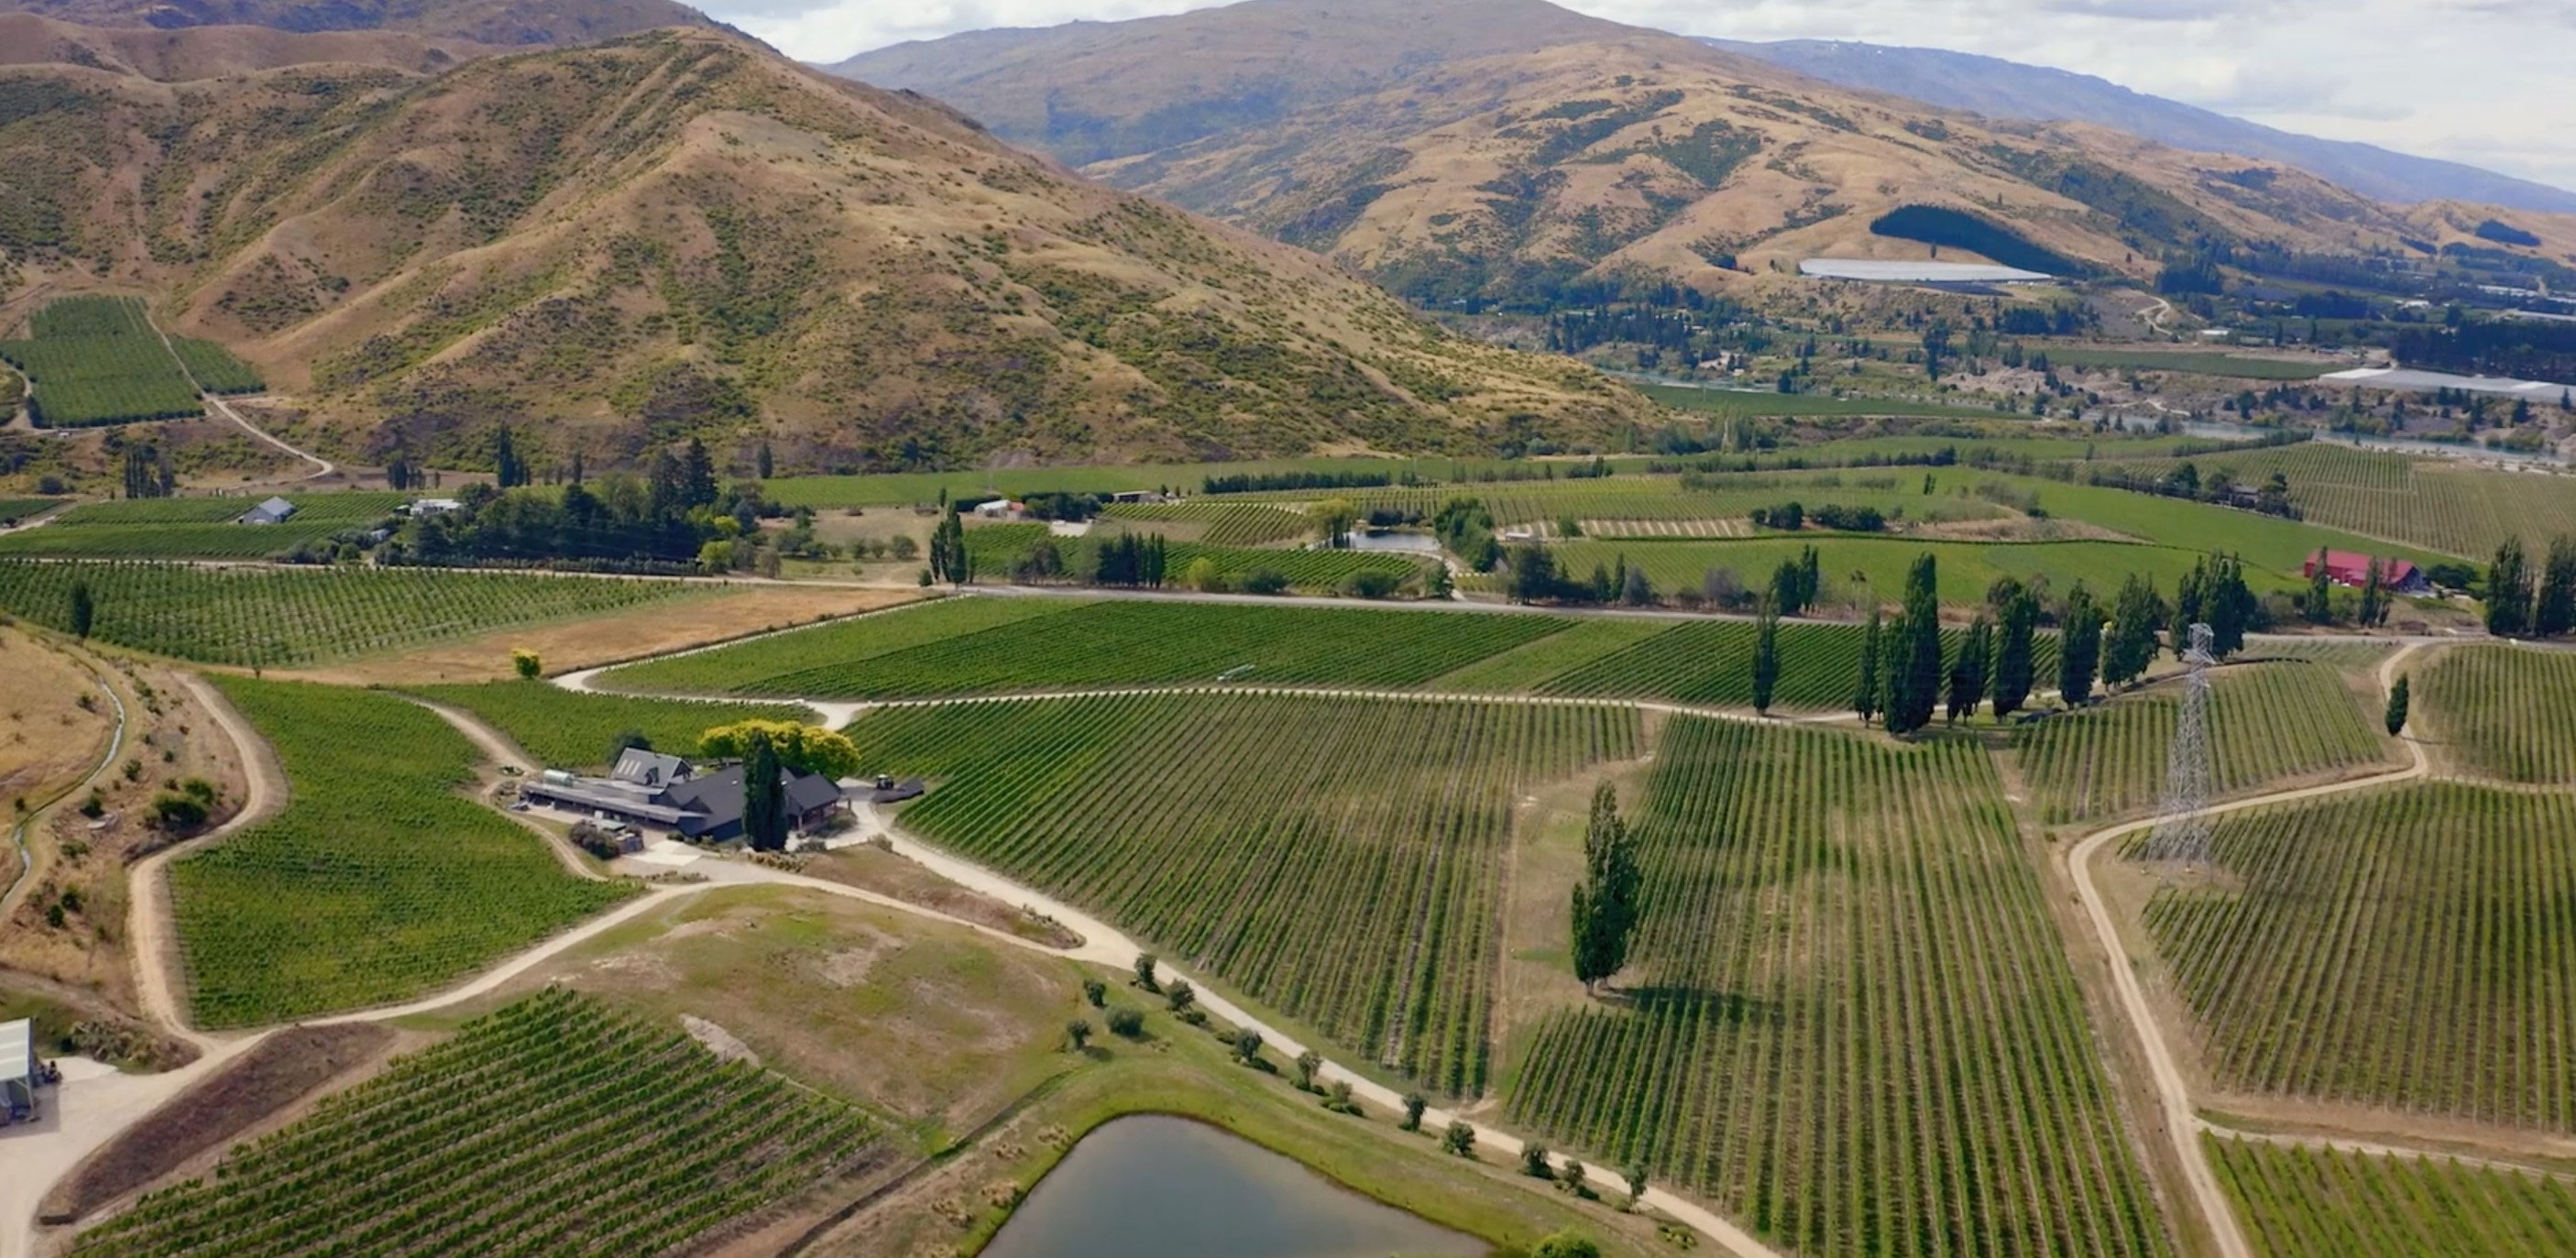 Central Otago's wine industry has grown hugely since Alan Brady first planted vines.